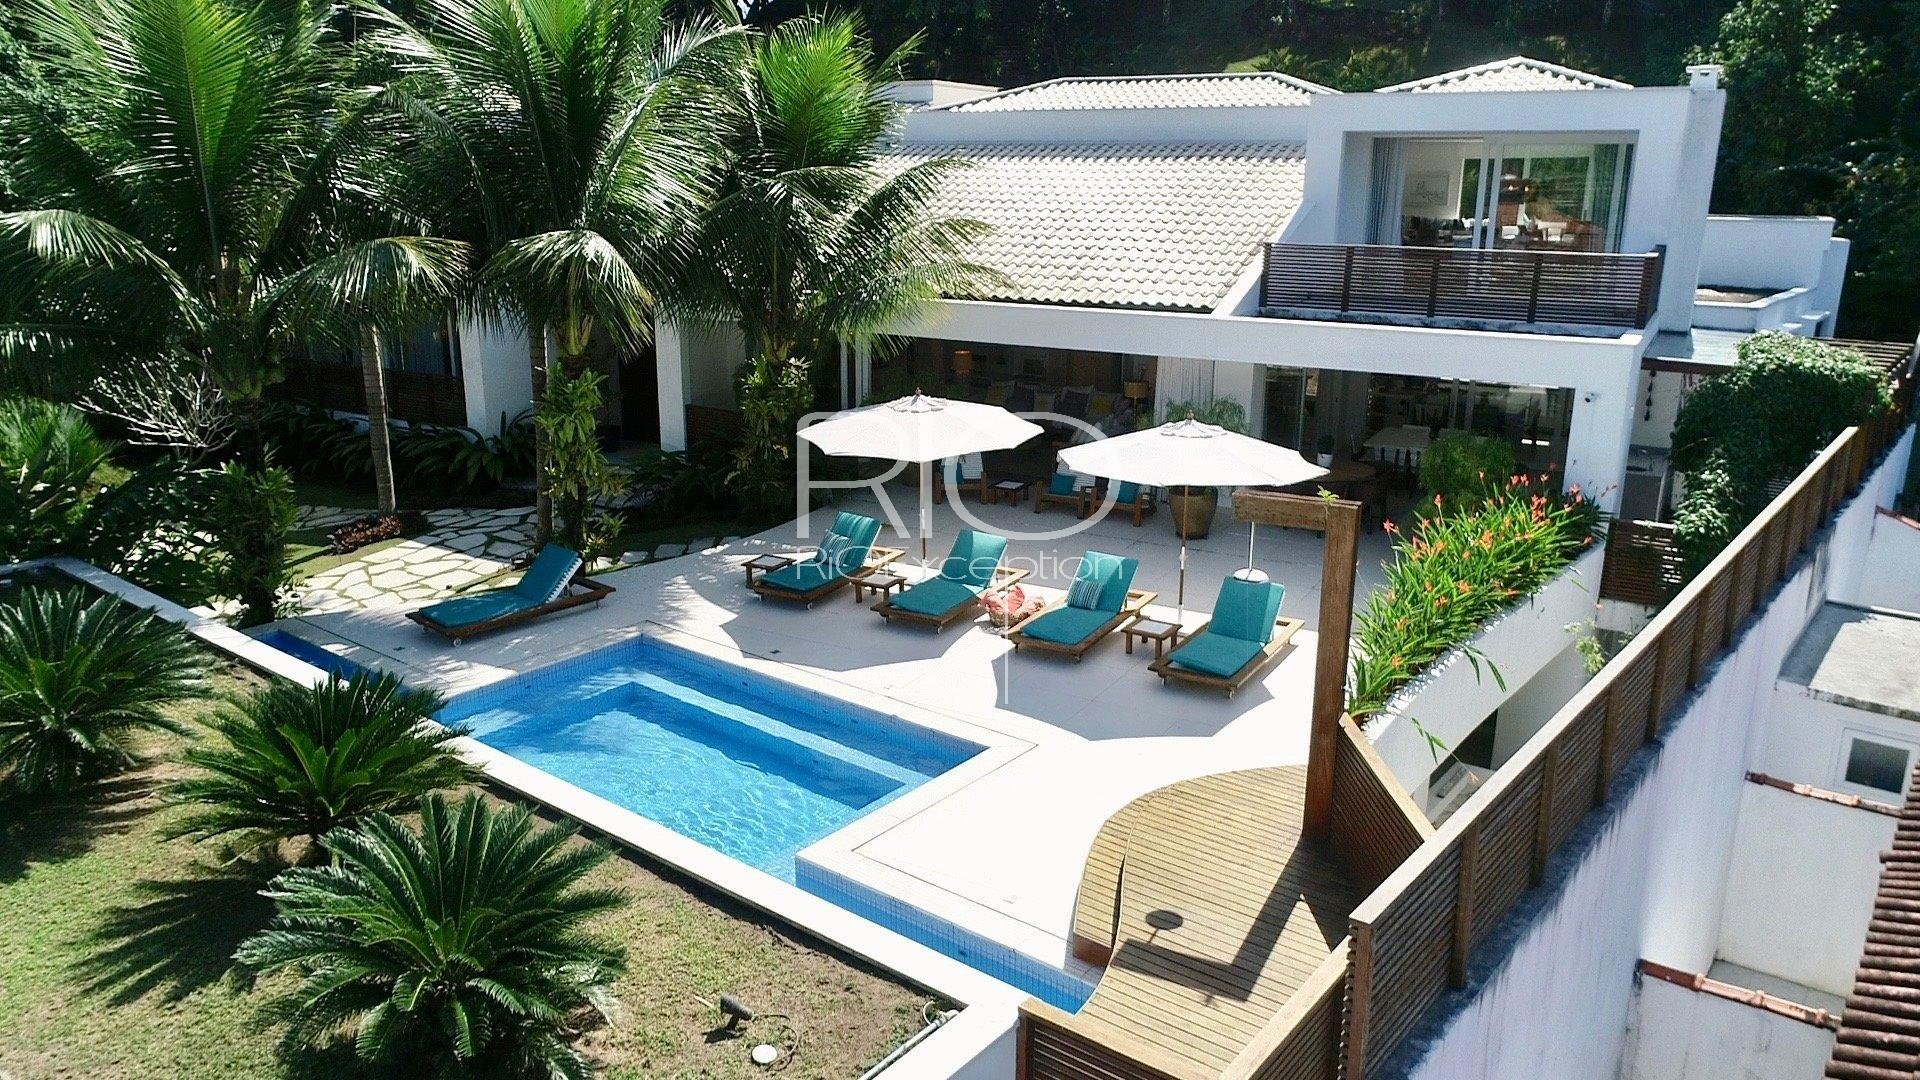 Sumptuous contemporary villa in Paraty !!!